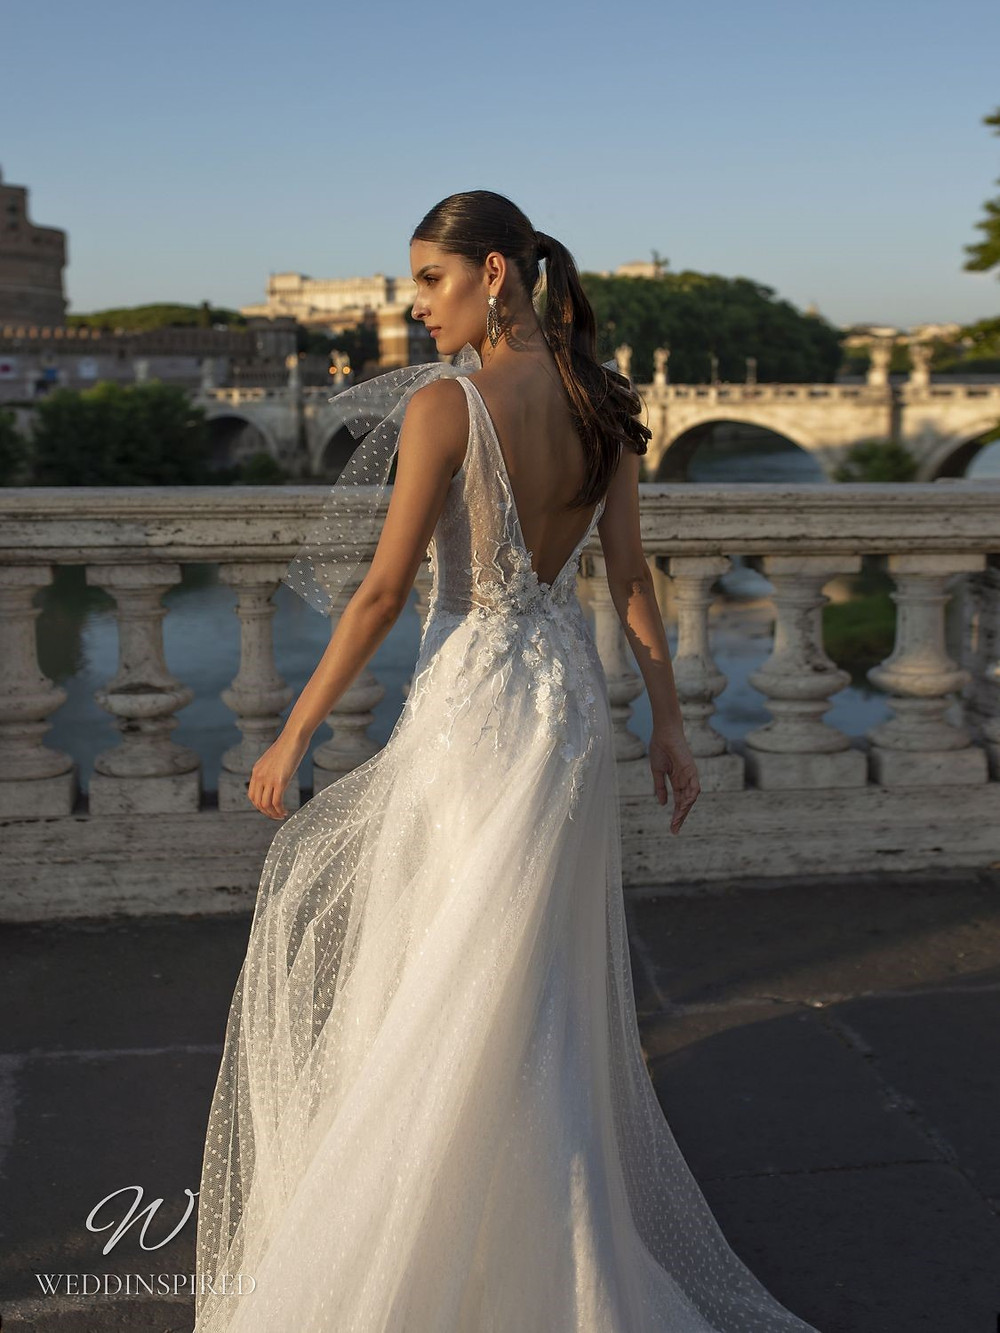 A Pinella Passaro tulle A-line wedding dress with a low back